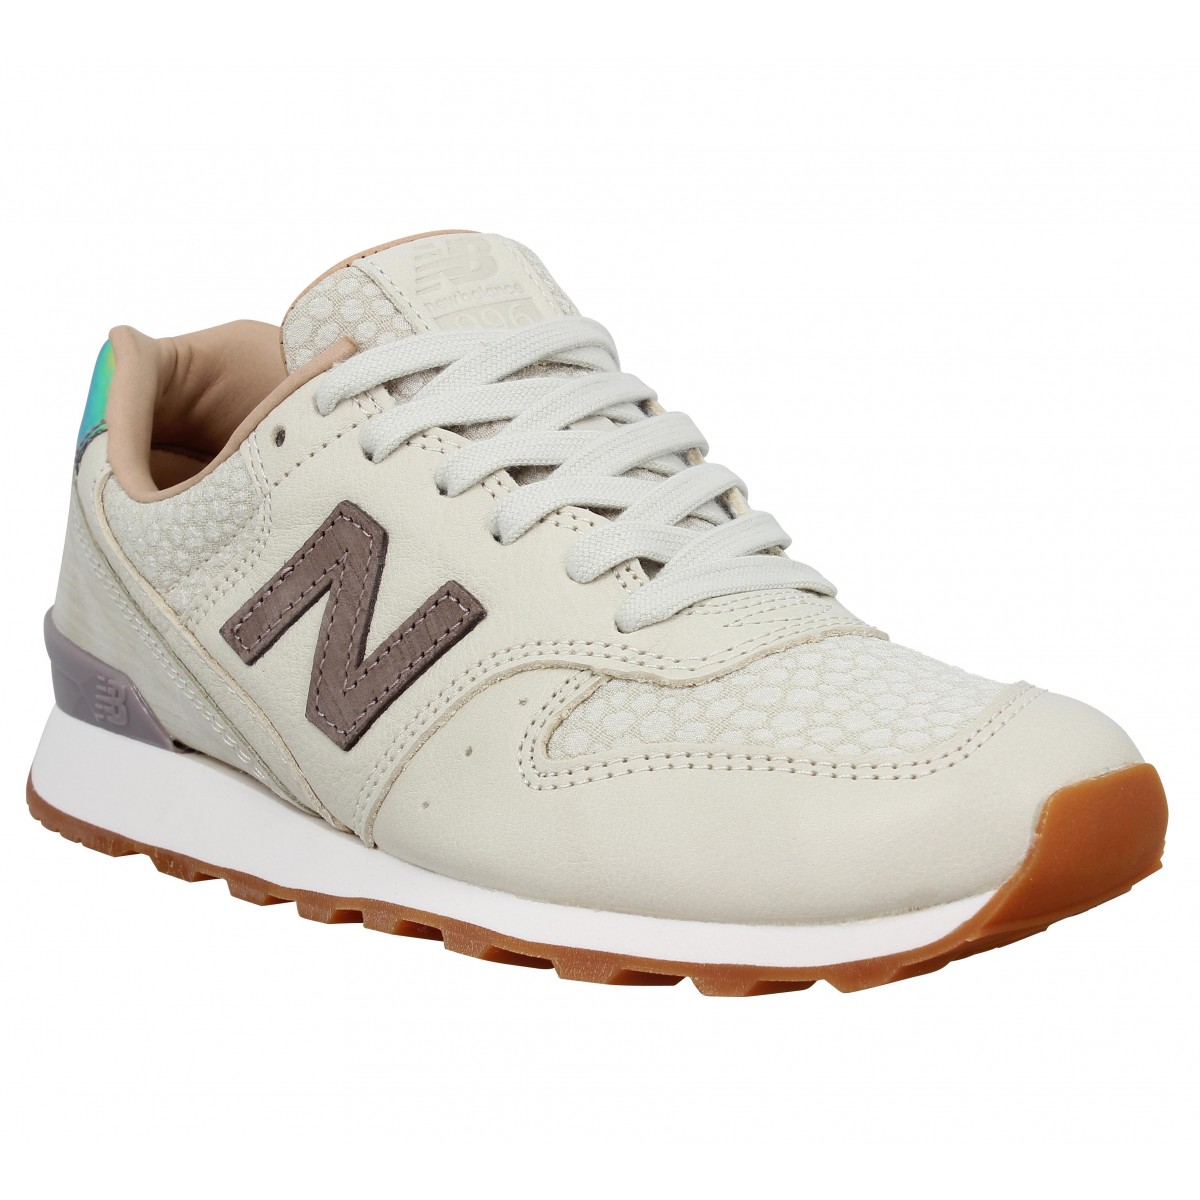 New Balance Marque 996-40-poudre